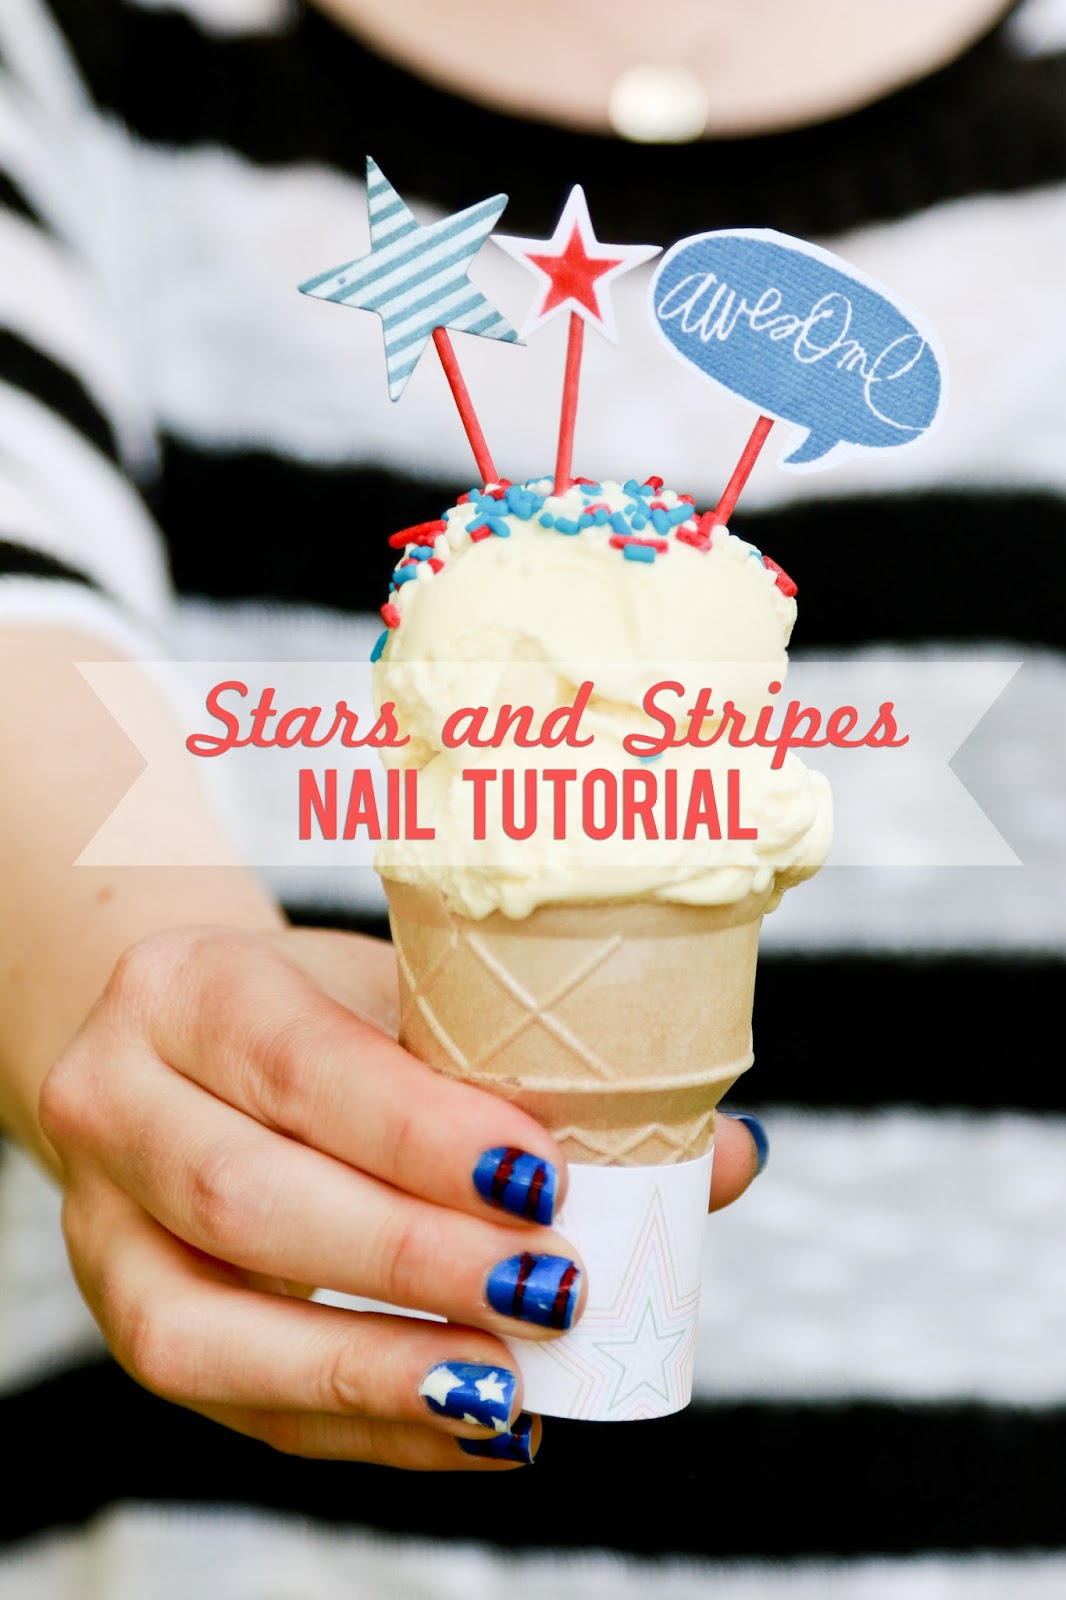 Awesome Stars and Stripes Nail Tutorial @craftysavvy @createoften #craftwarehouse #nailart #naildesigns #diy